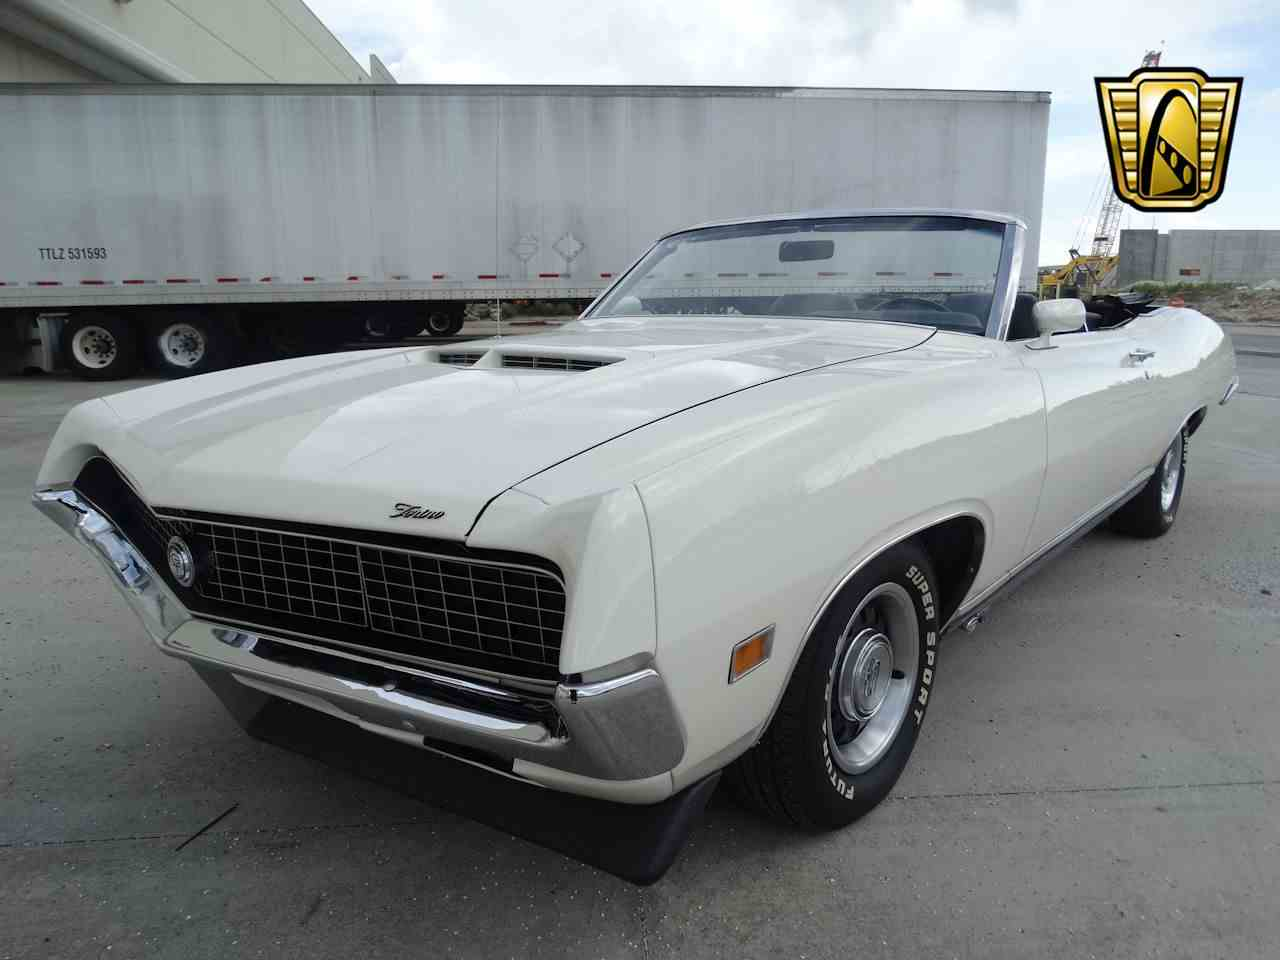 Large Picture of 1971 Ford Torino located in Coral Springs Florida - $68,000.00 Offered by Gateway Classic Cars - Fort Lauderdale - LG4B